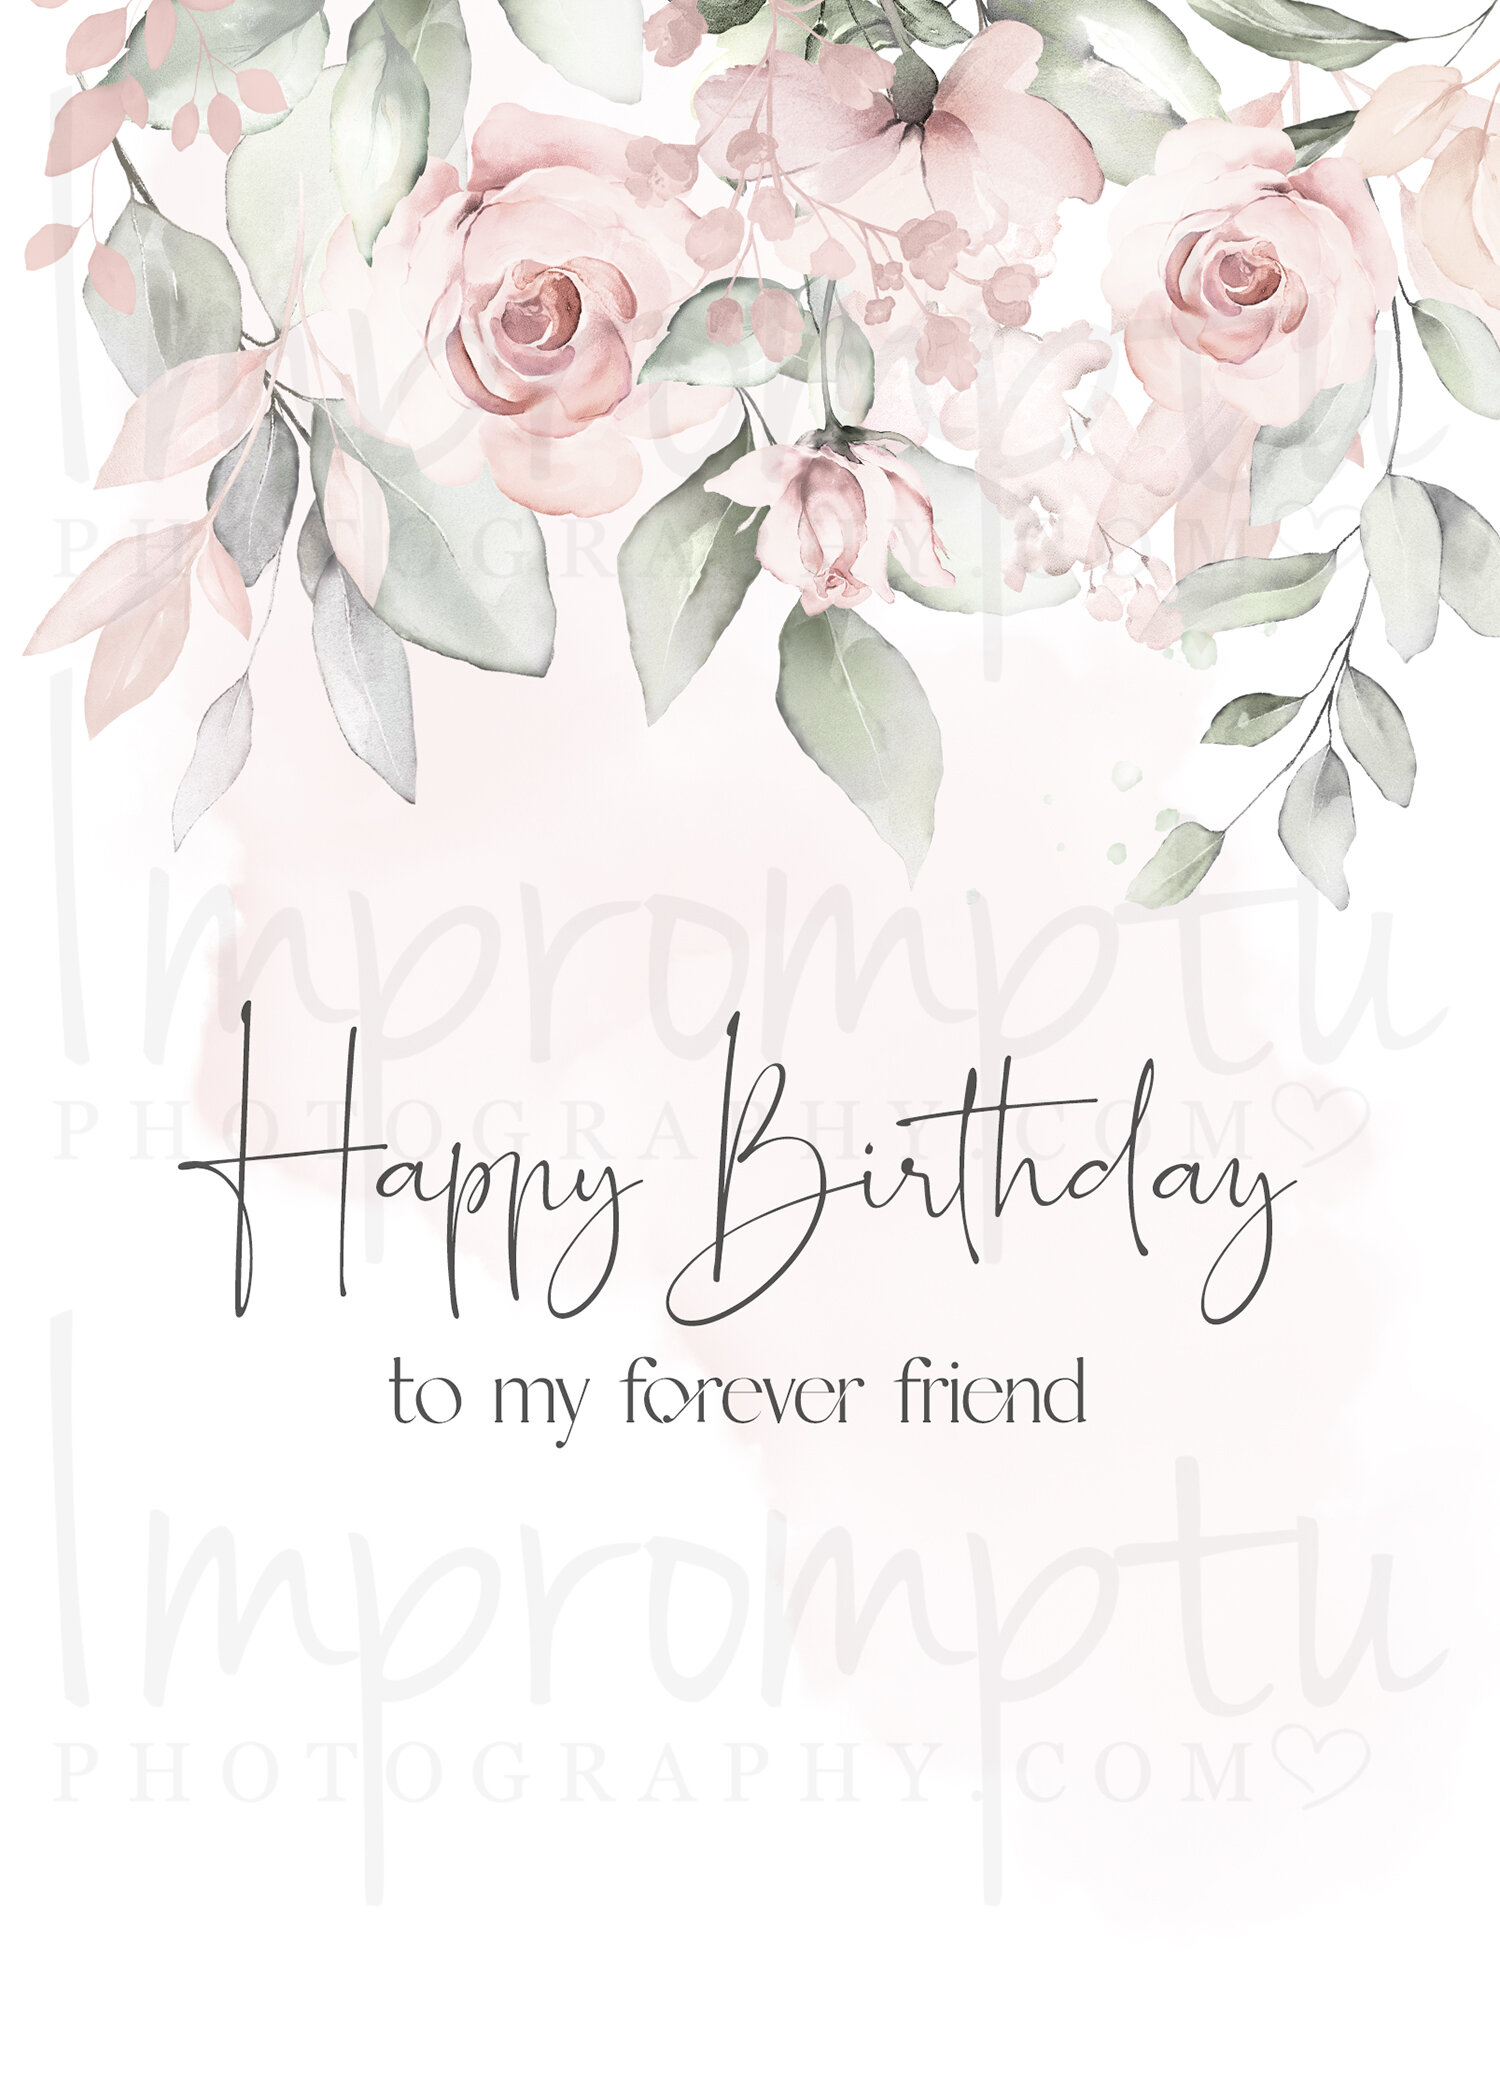 5x7 Printable Happy Birthday To My Forever Friend Roses Impromptu Photography